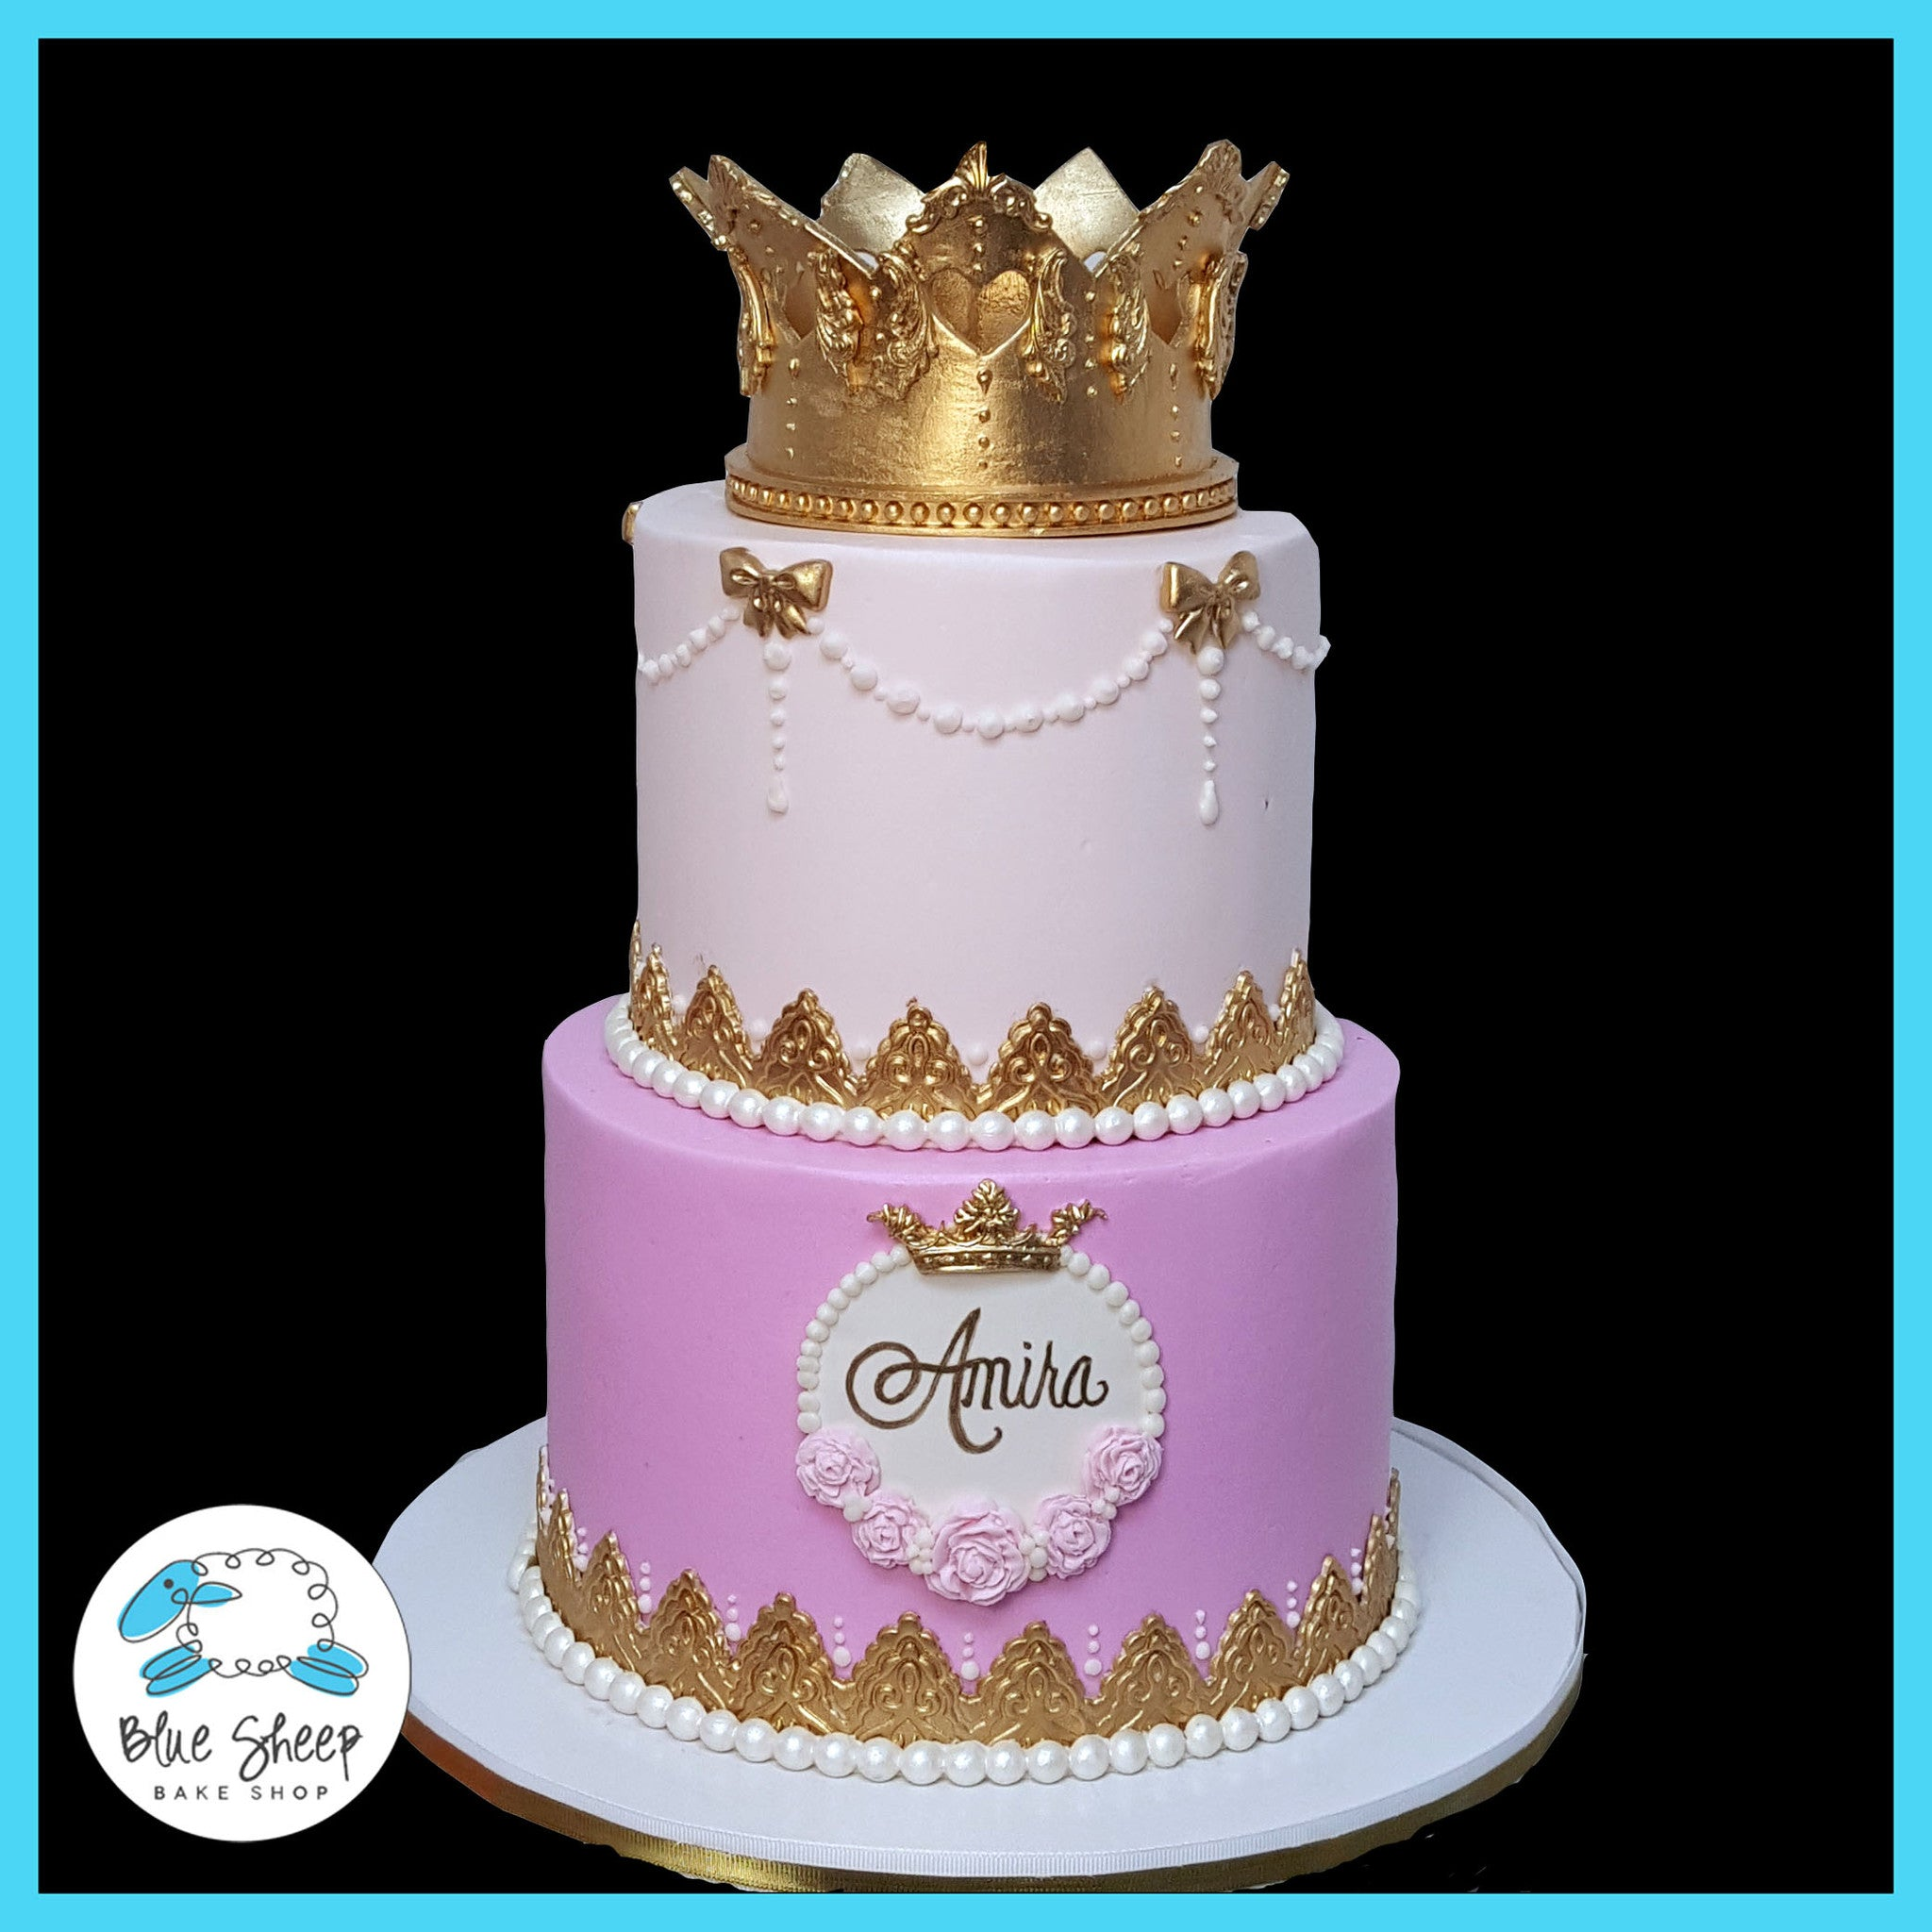 Amiras Princess 1st Birthday Cake Blue Sheep Bake Shop